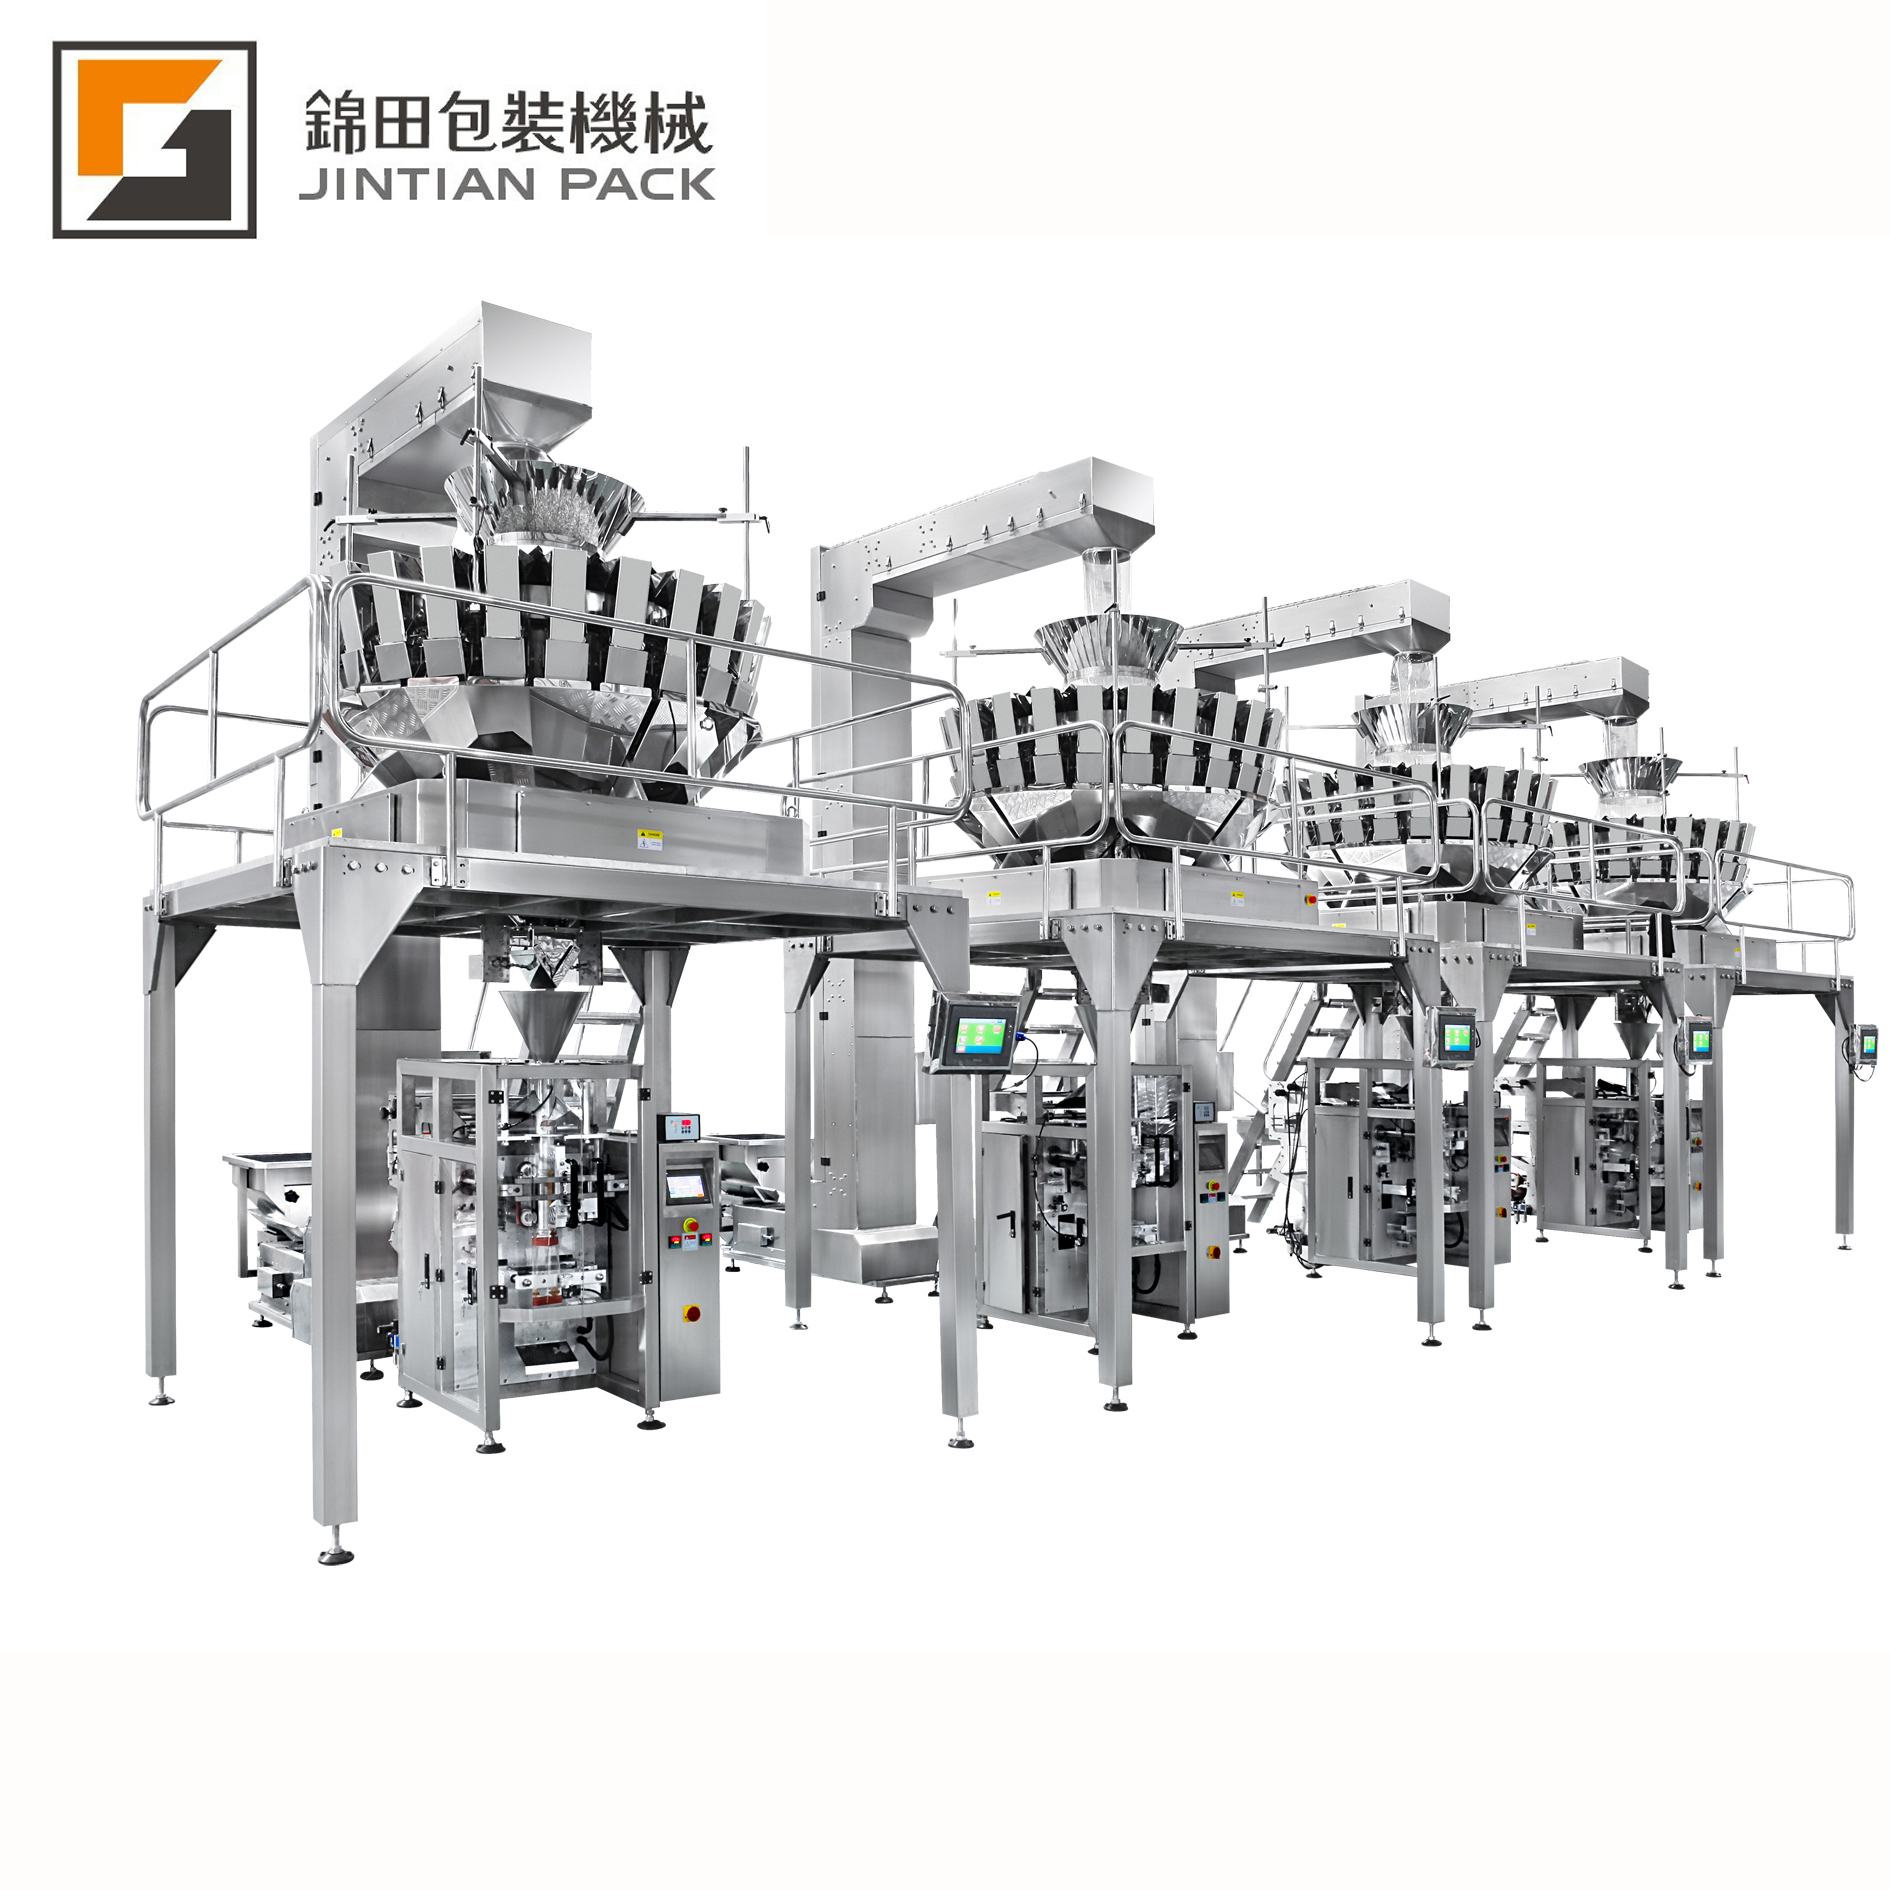 JT-520VW High speed automatic packing line with multihead weigher